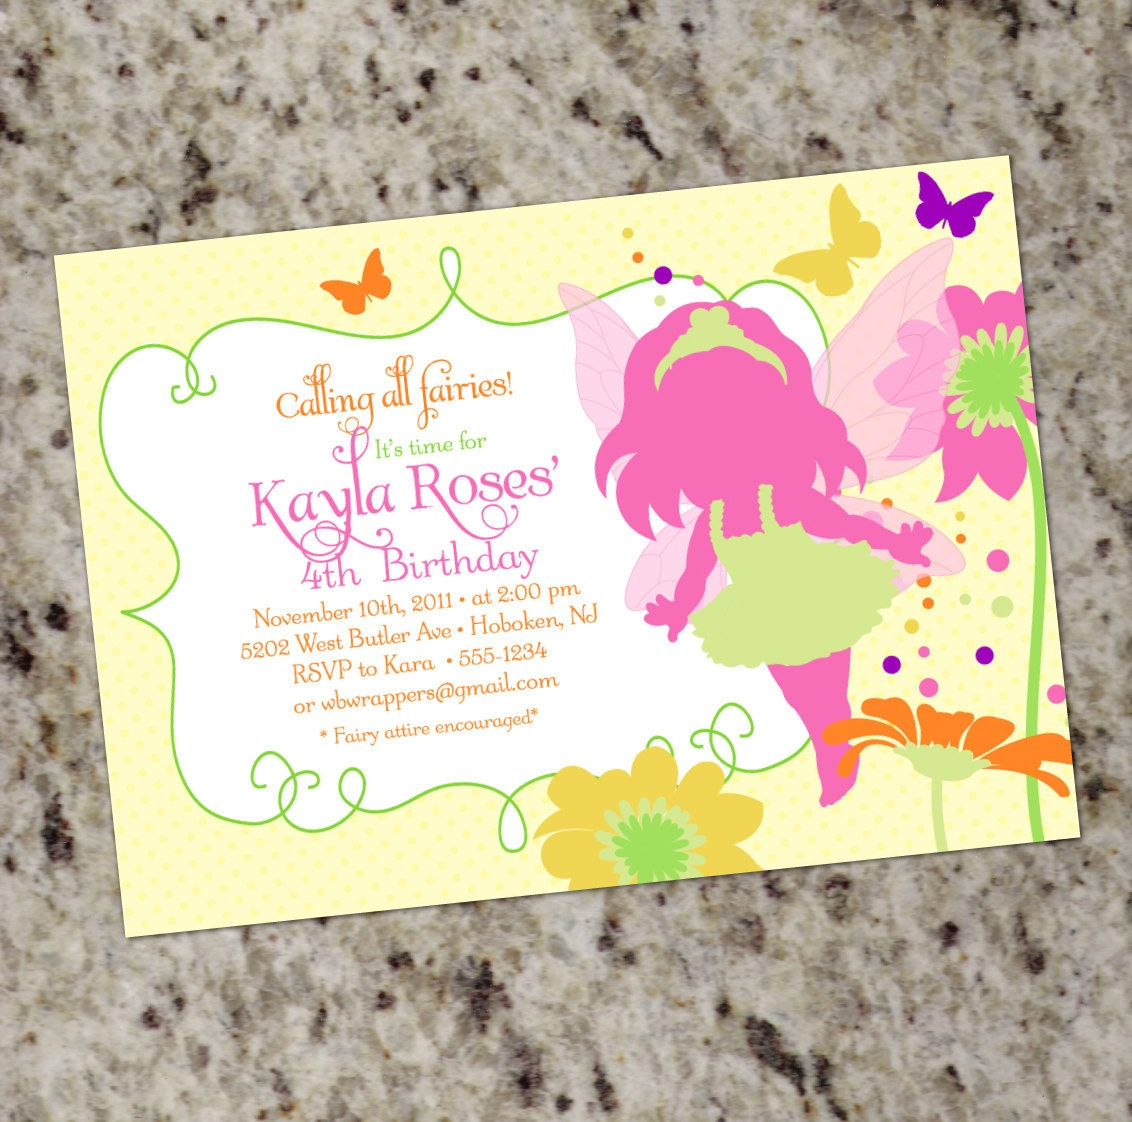 Fairy Birthday Invitations is an amazing ideas you had to choose for invitation design